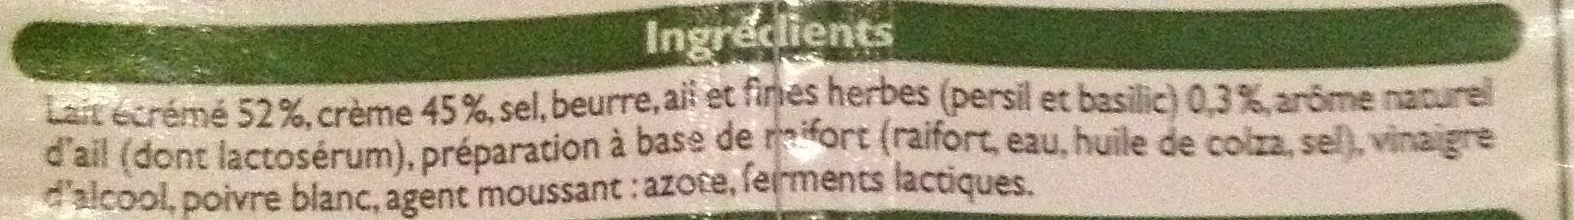 Ail et fines herbes fromage à tartiner (27% MG) - Ingredients